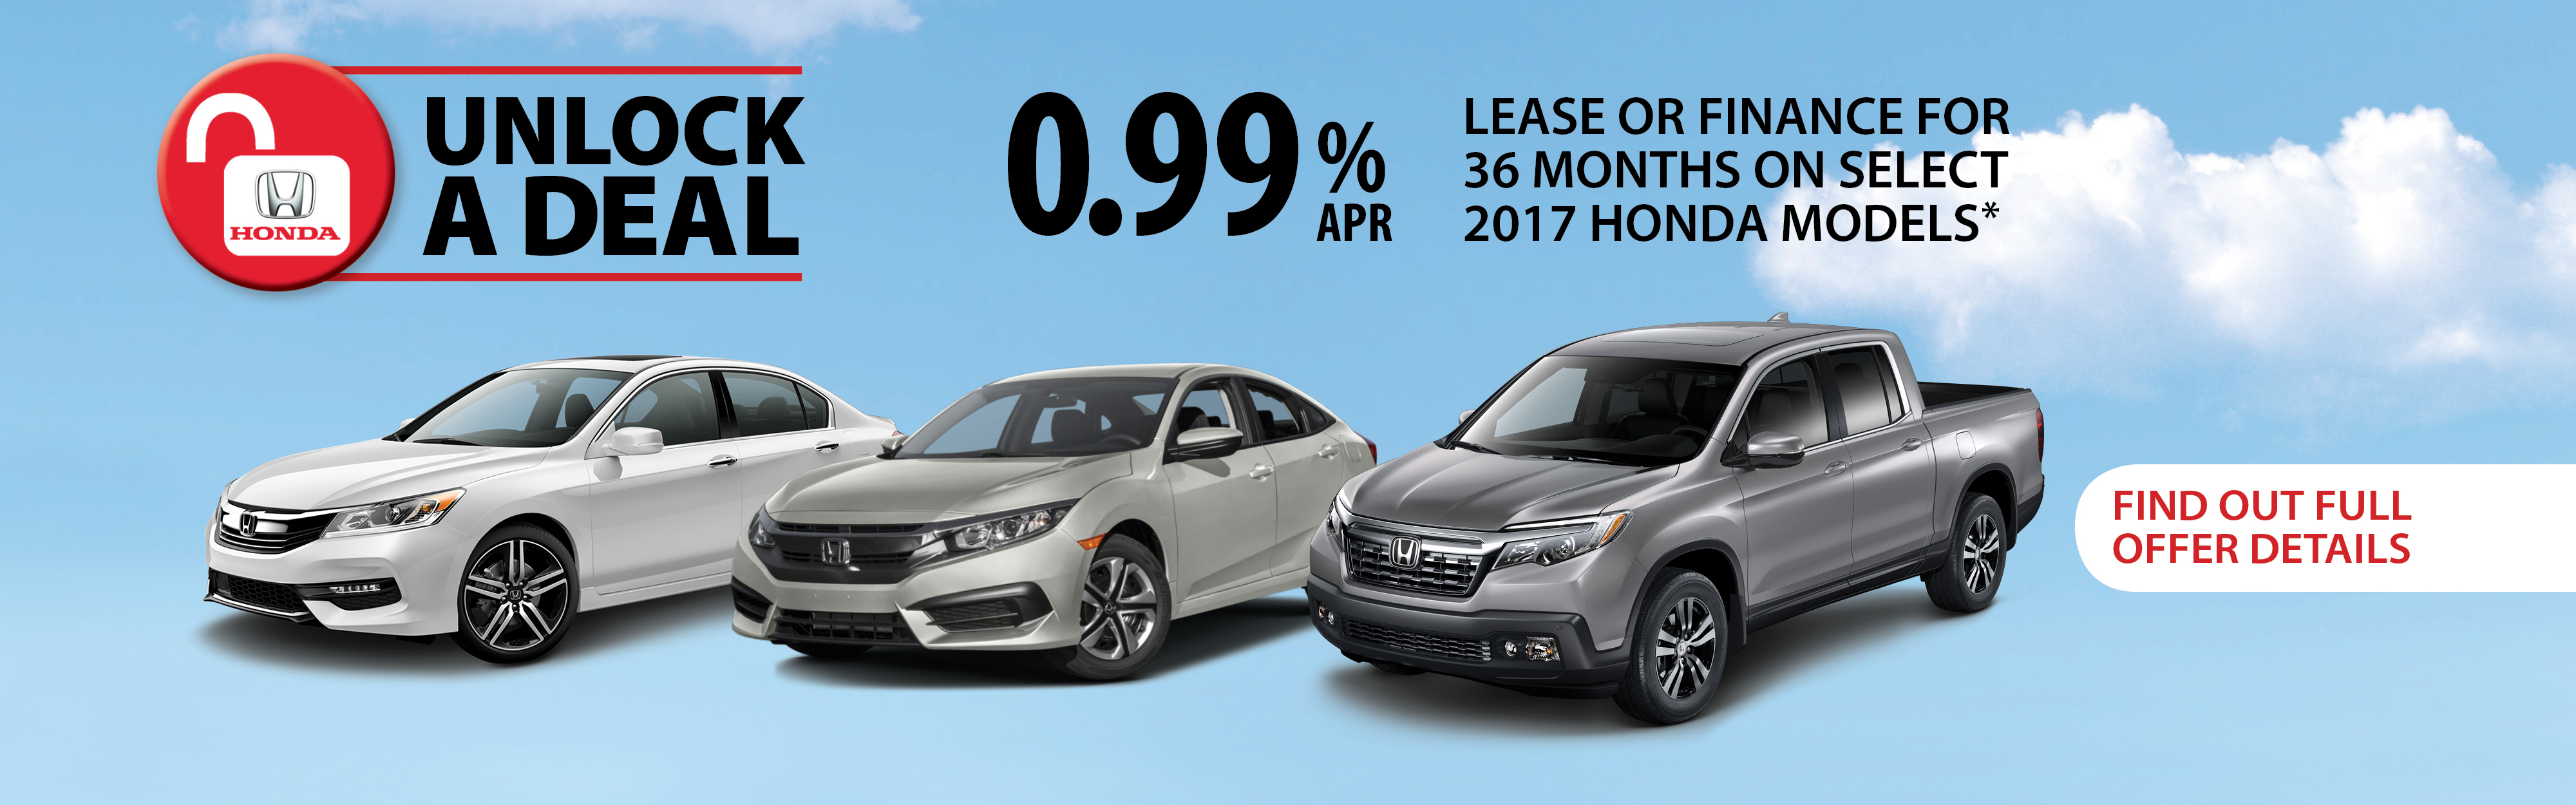 Unlock a Deal this month at Richmond Hill Honda in Toronto, the GTA, and all of Ontario.